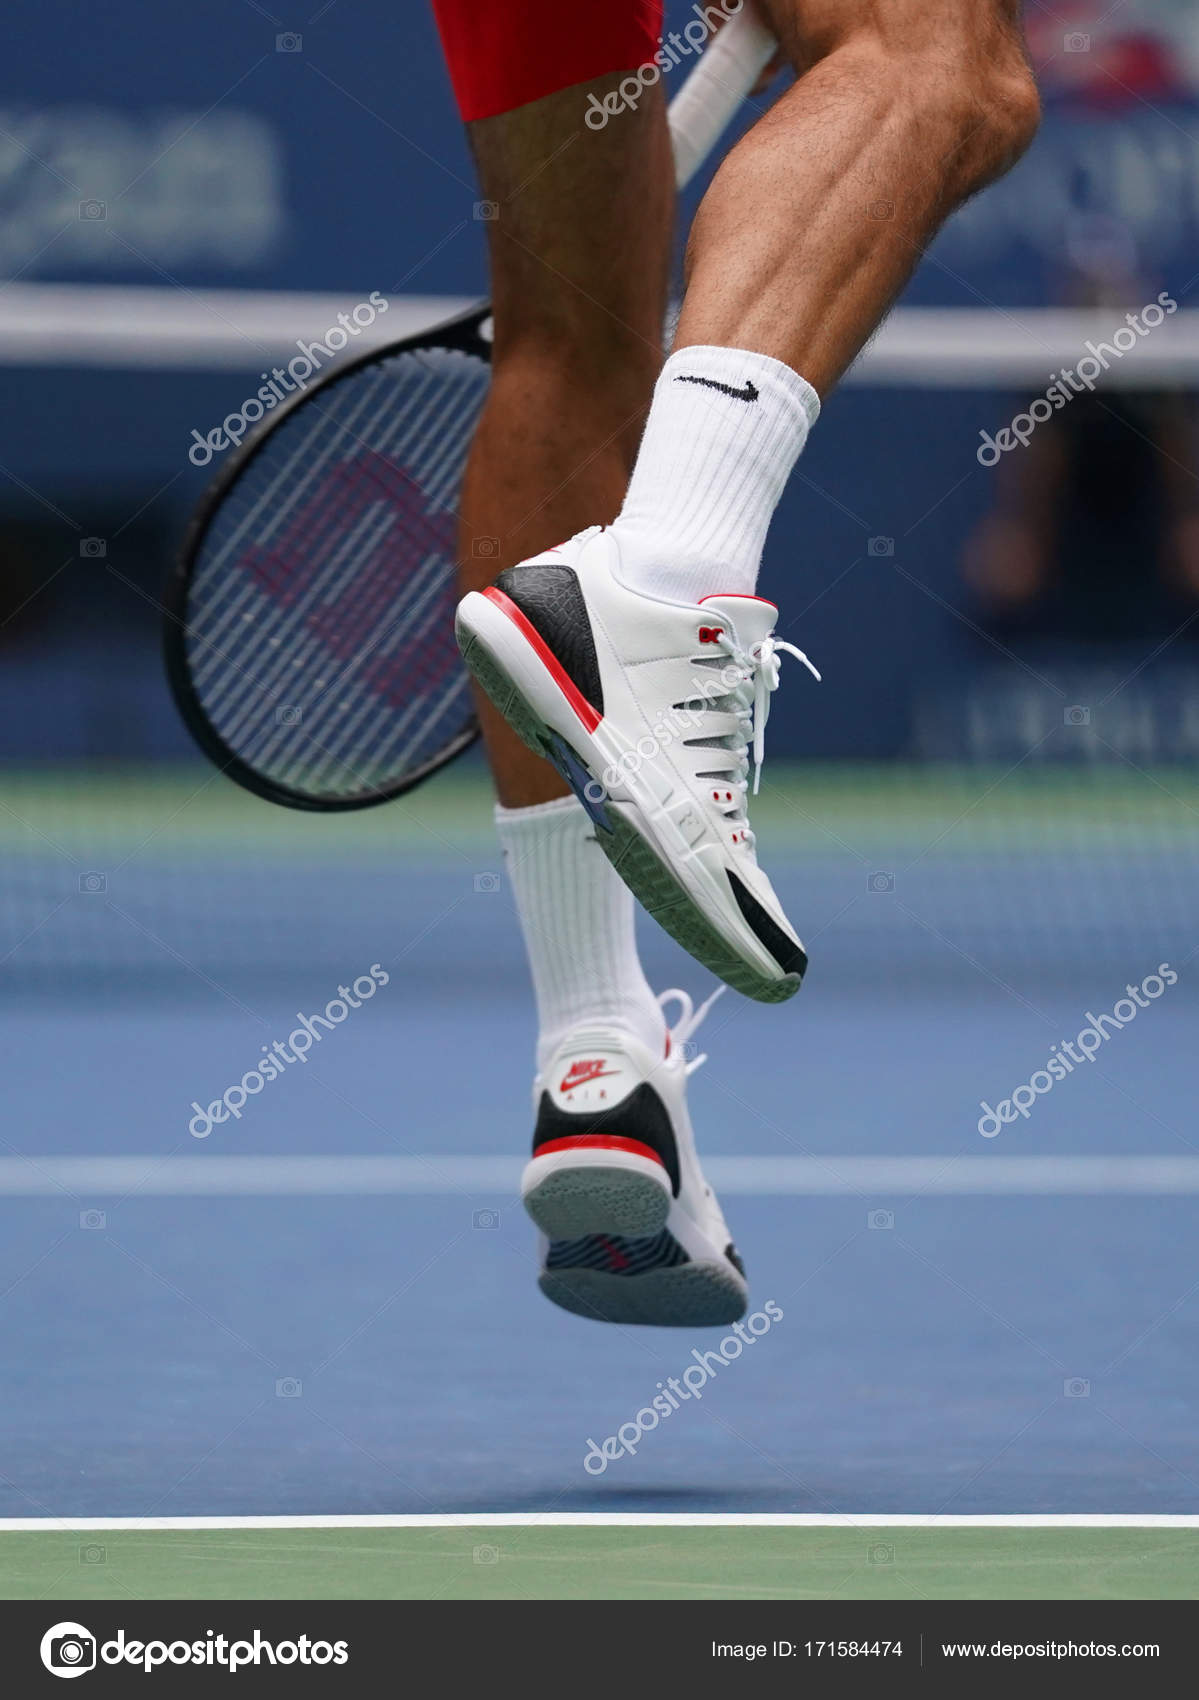 Grand Slam Champion Roger Federer Of Switzerland Wears Custom Nike Shoes During His Us Open 2017 Second Round Match Stock Editorial Photo Zhukovsky 171584474